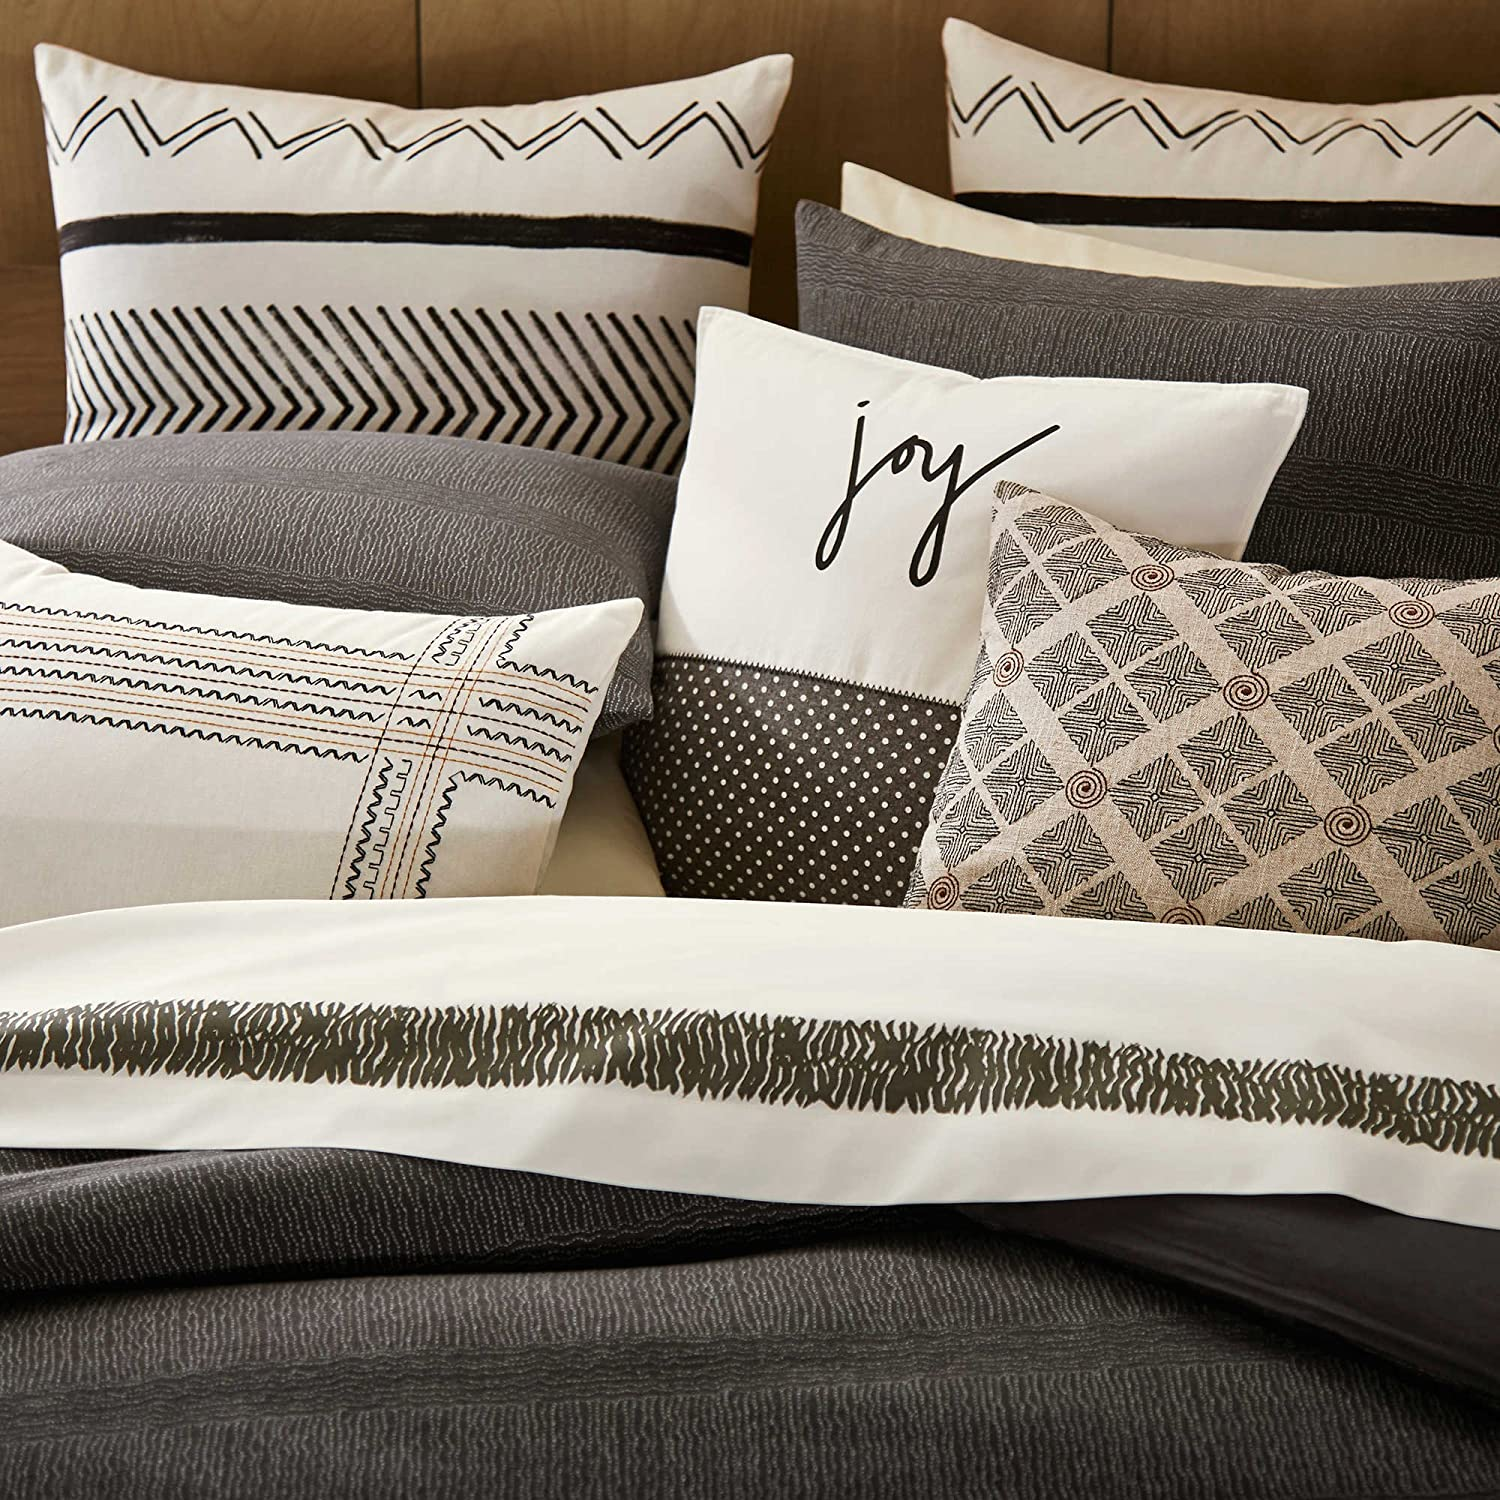 Ellen Degeneres European Pillow Sham from the Mombasa Bedding Collection in an Ivory Color